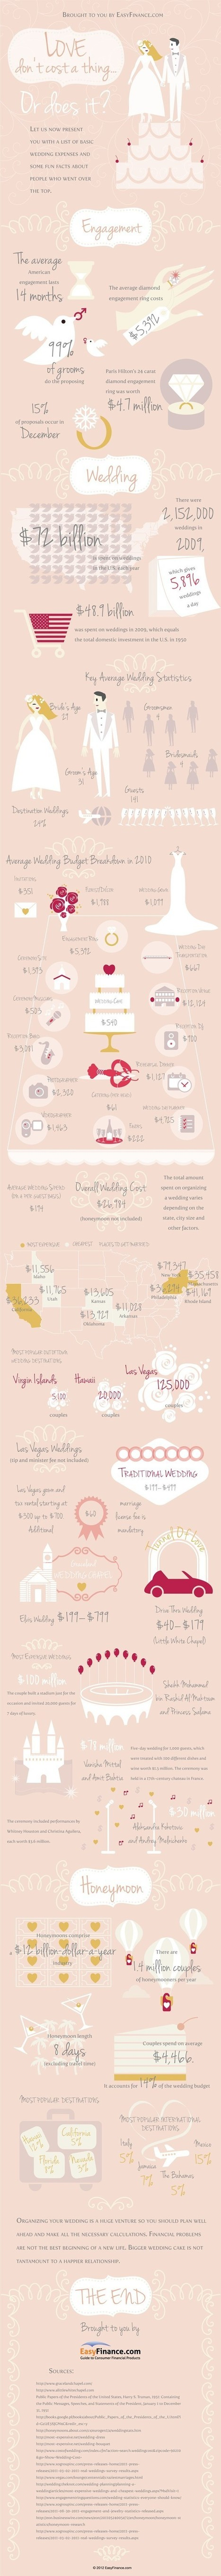 Falling in Love - How much does it cost in Real Sense? | Infographics | All Infographics | Scoop.it